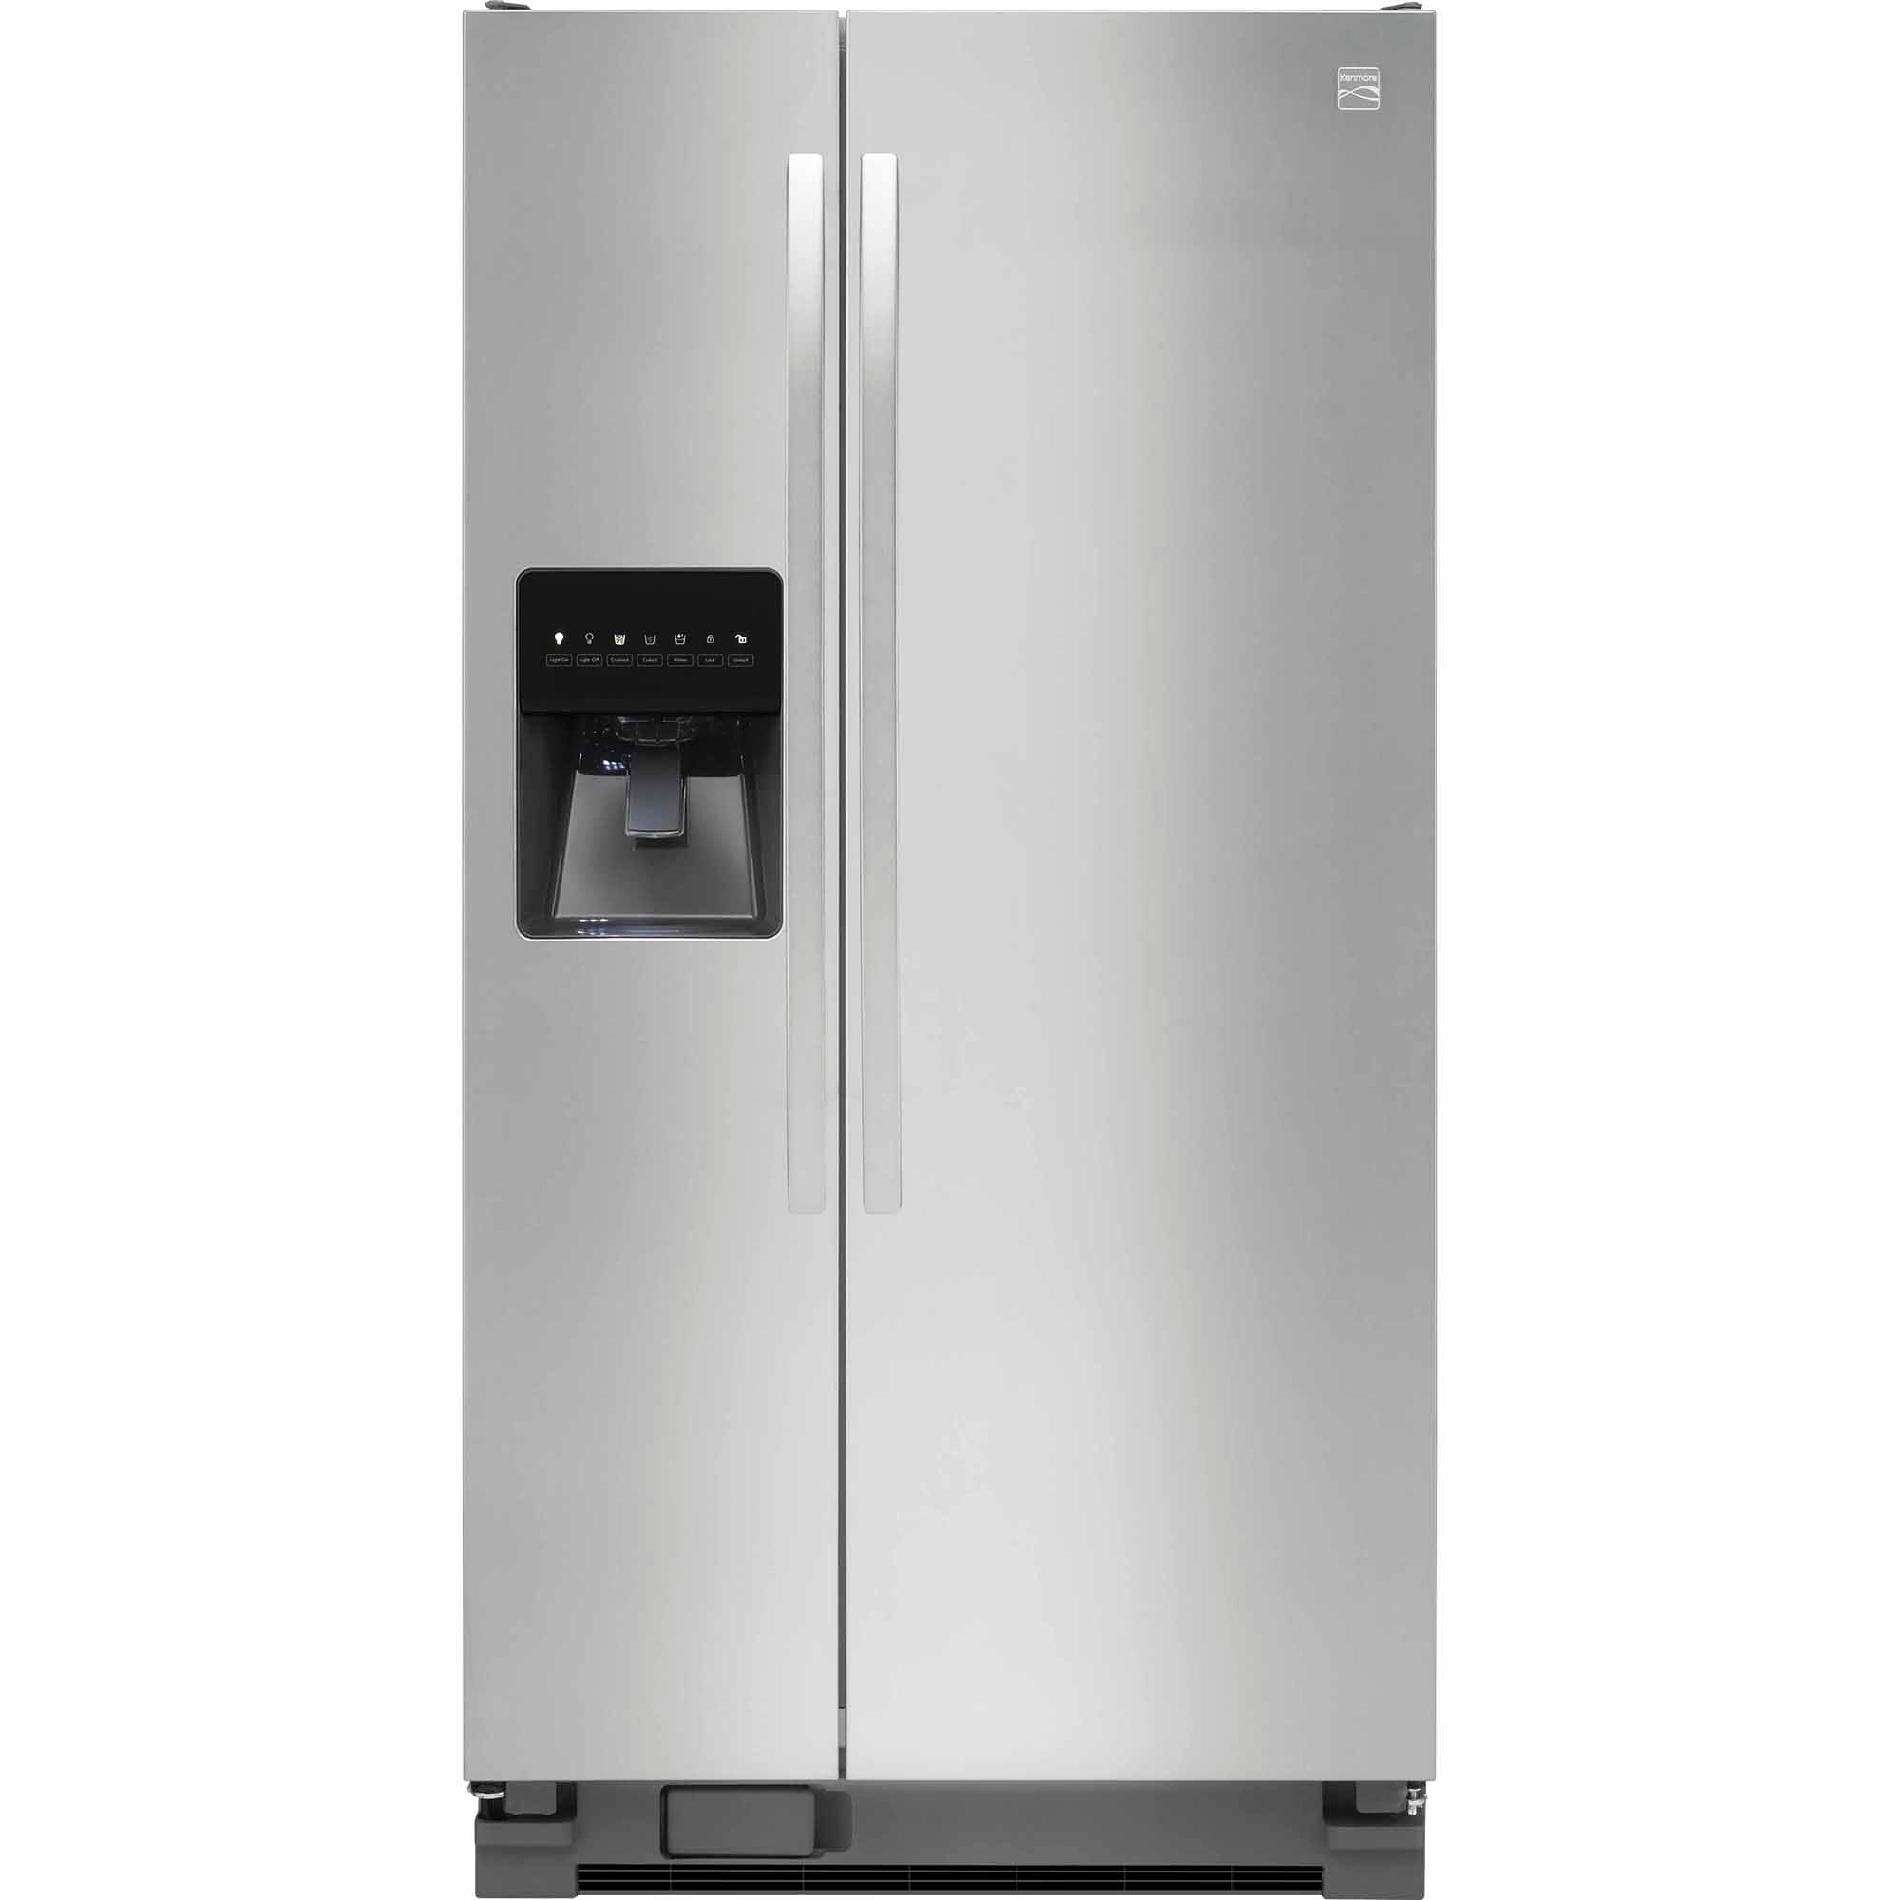 51793-21-cu-ft-Side-by-Side-Refrigerator-Stainless-Steel